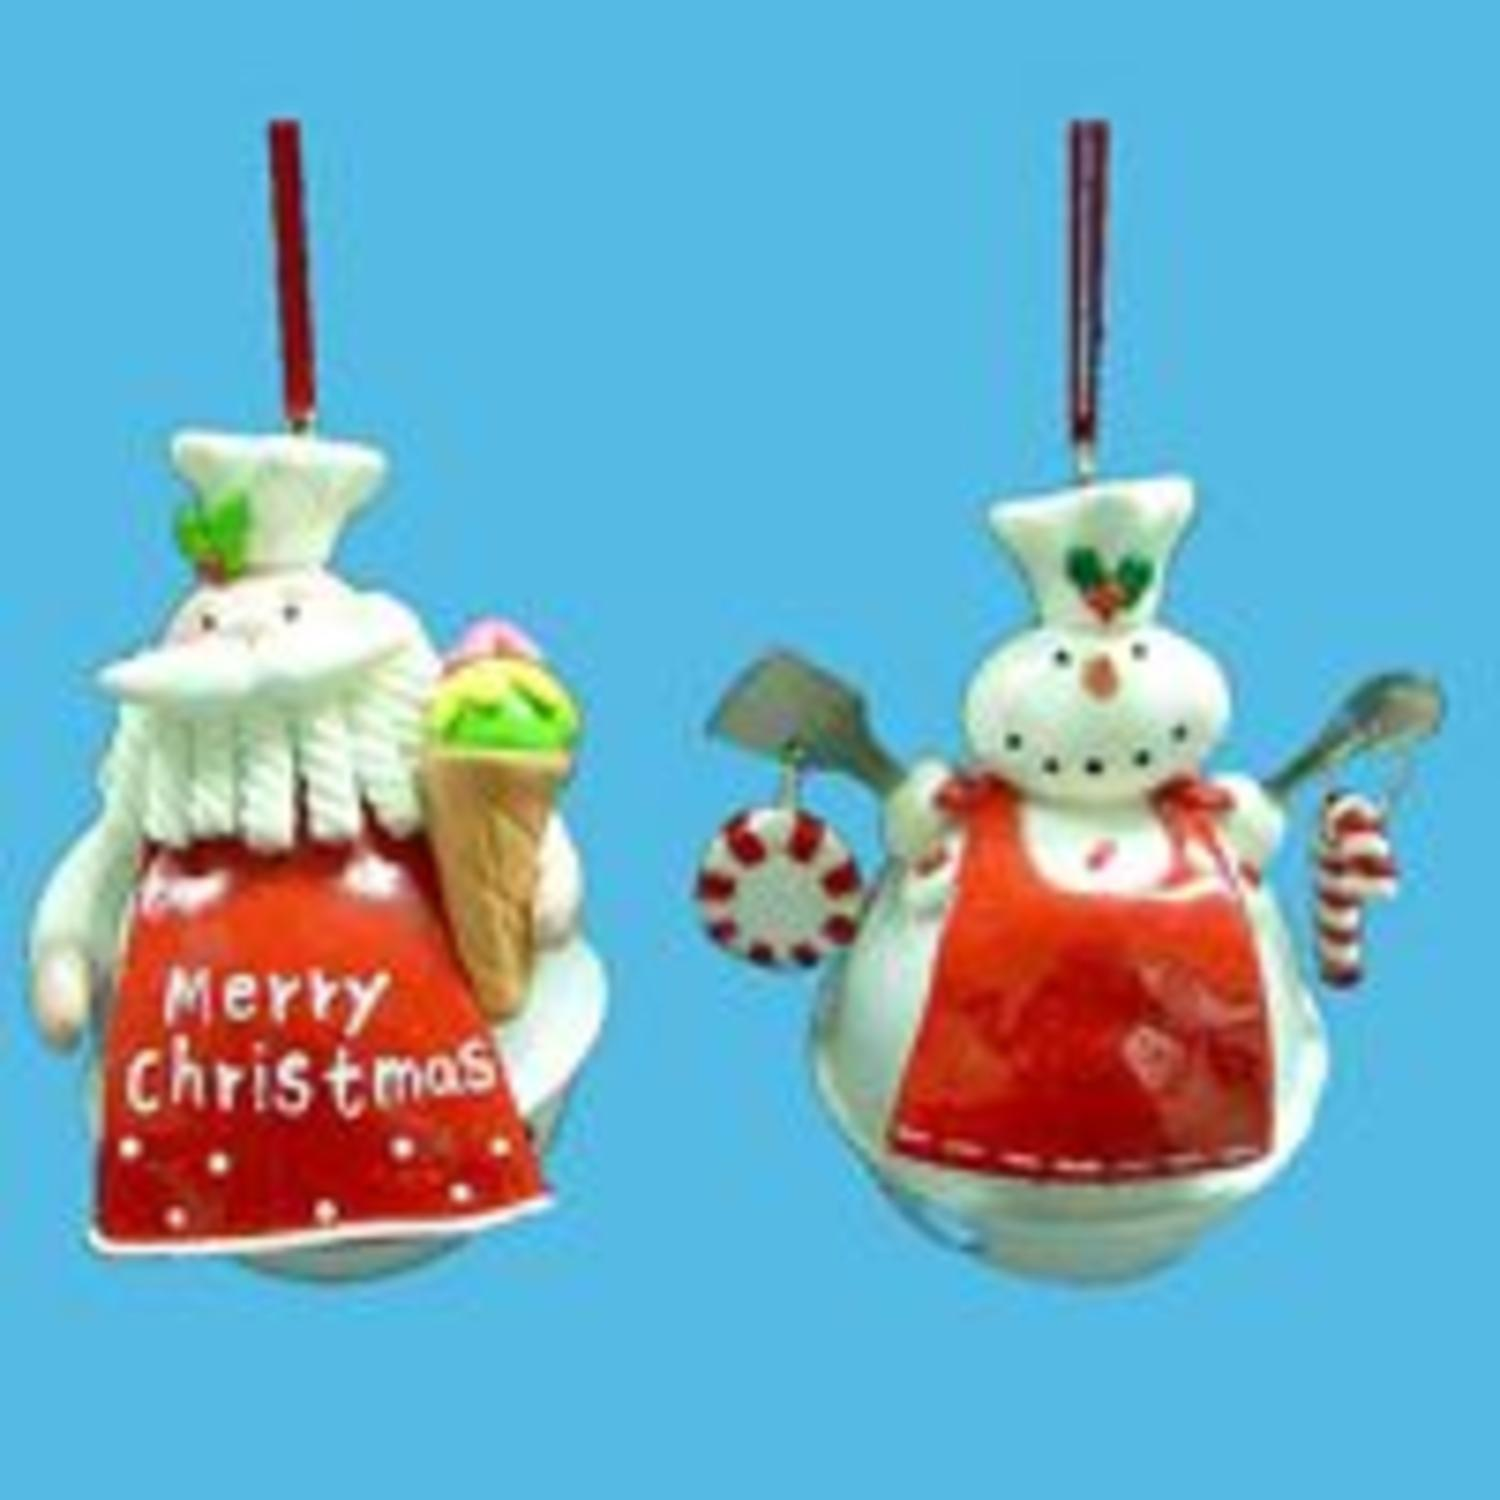 Club Pack of 12 Santa Claus and Snowman Chef on Jingle Bell Christmas Ornaments